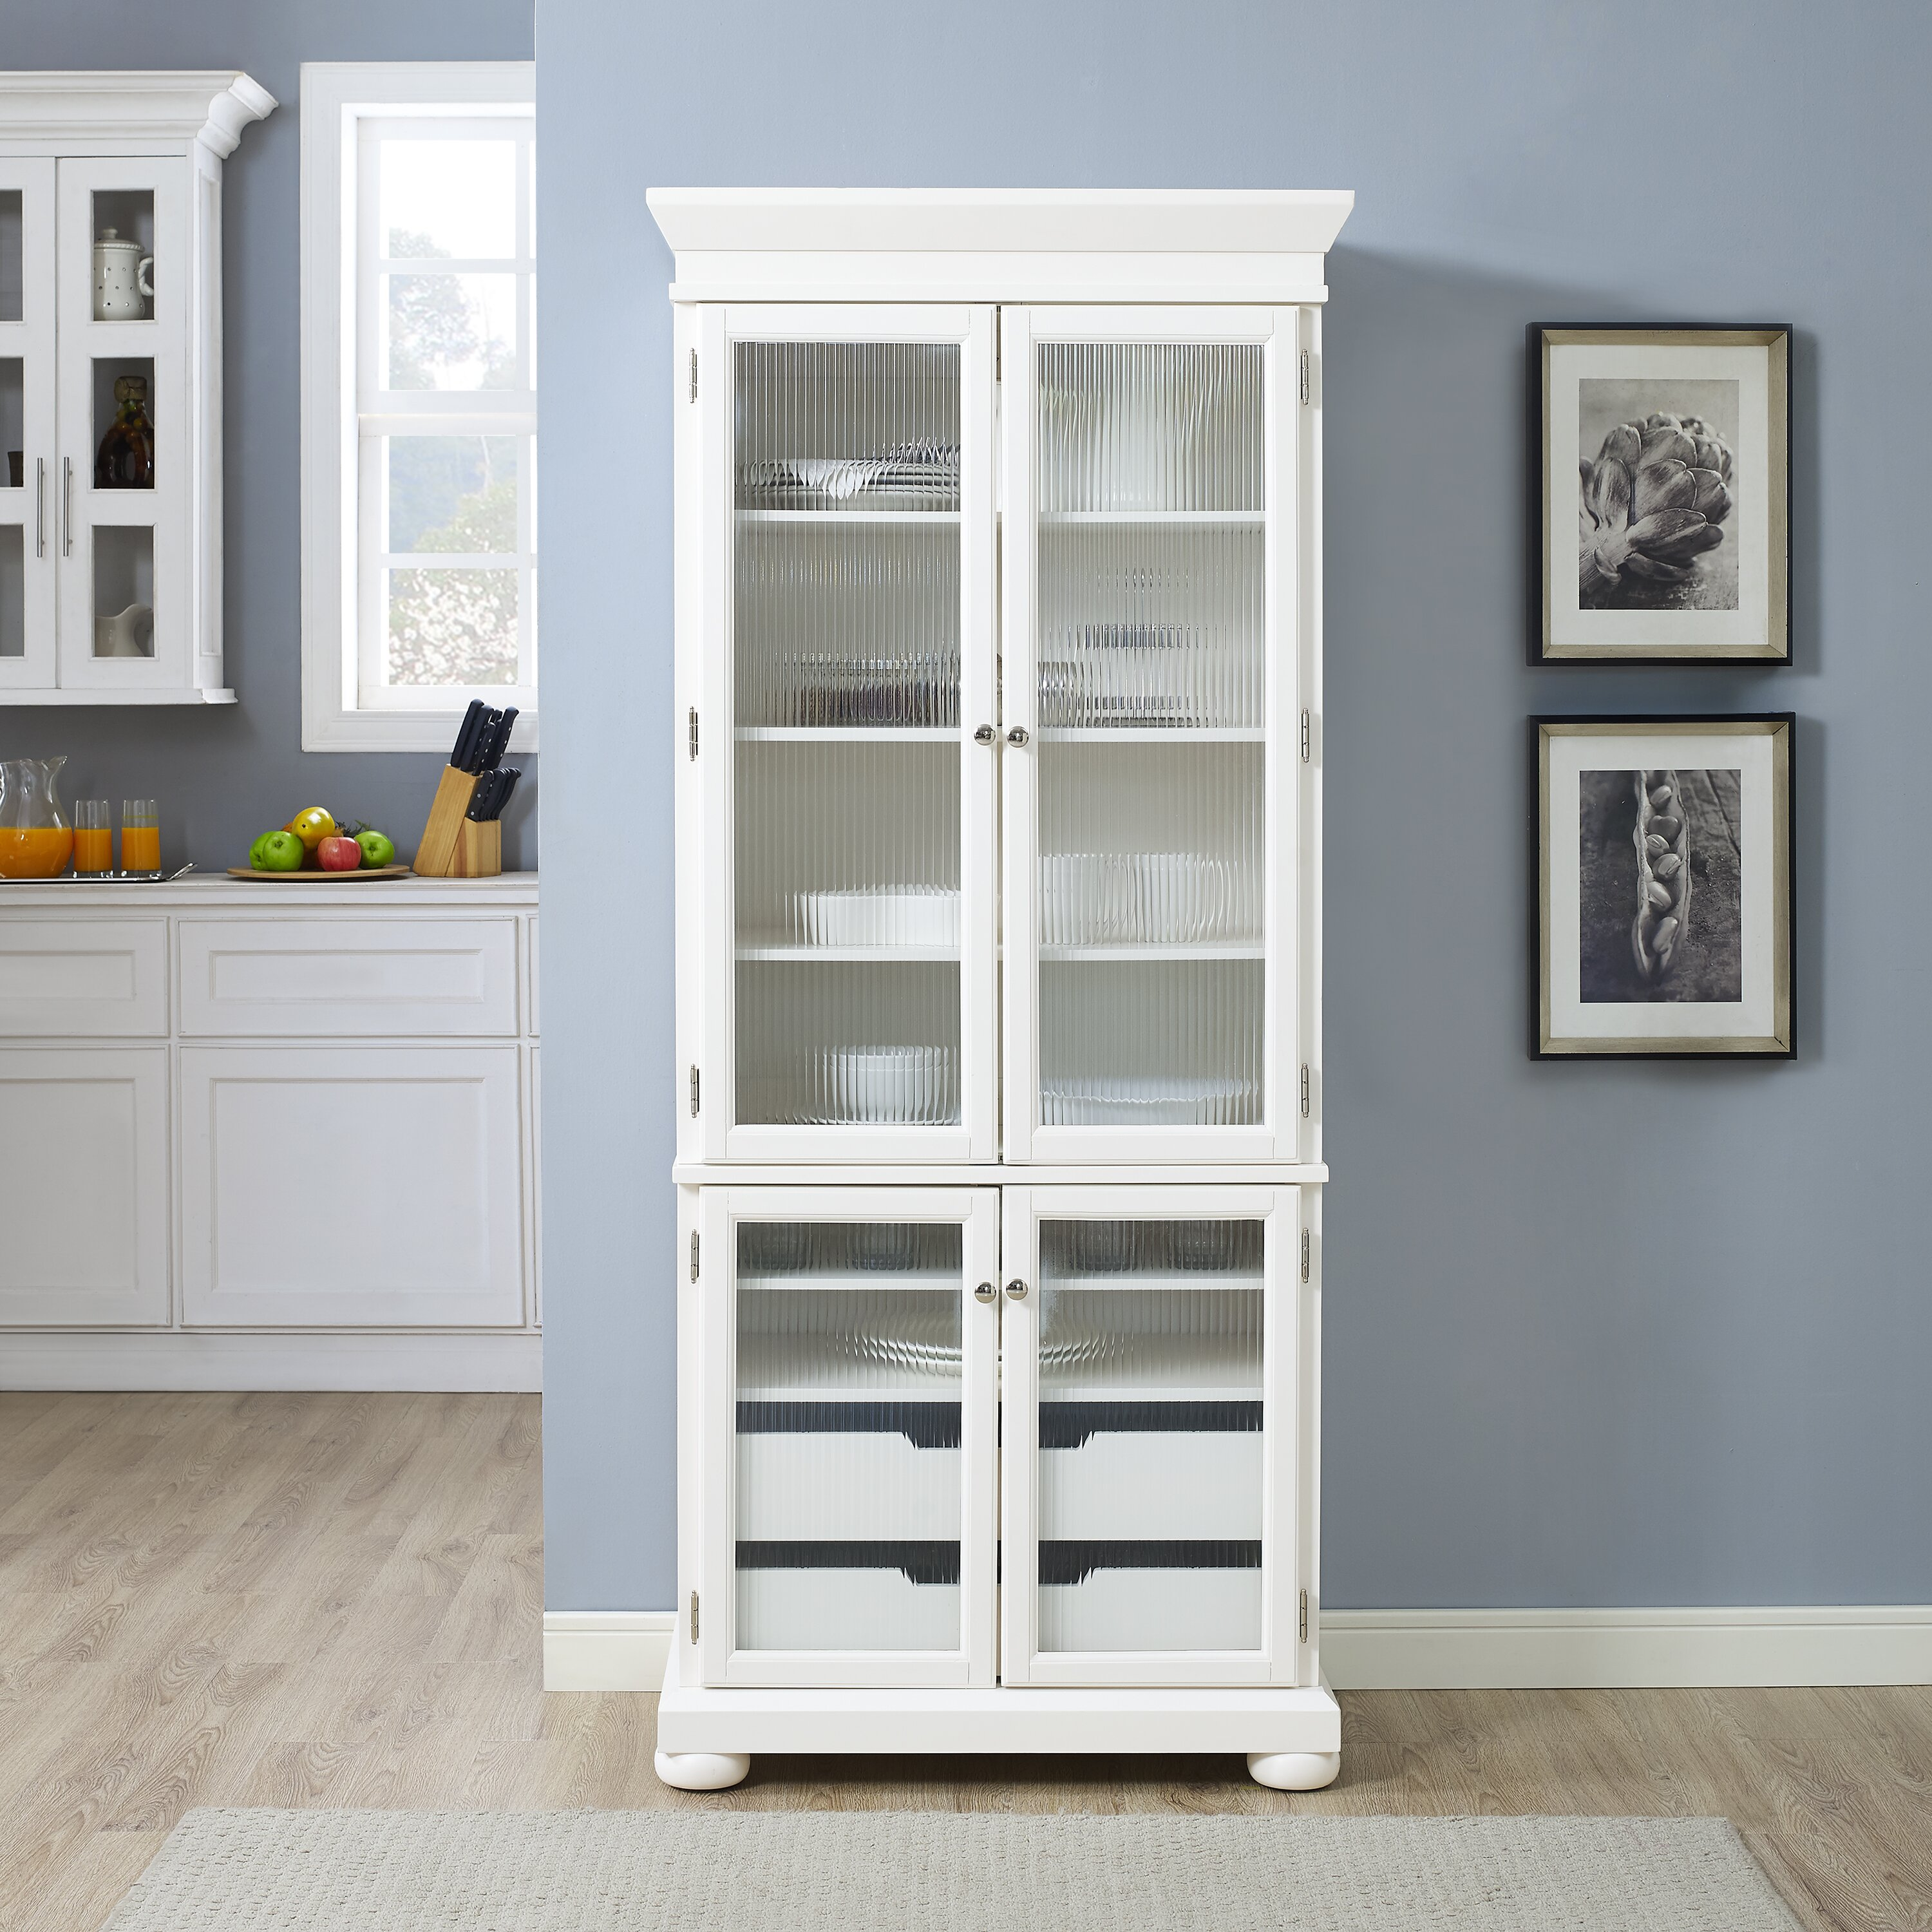 Kitchen Cabinets With Pantry: Darby Home Co Pottstown Kitchen Pantry & Reviews